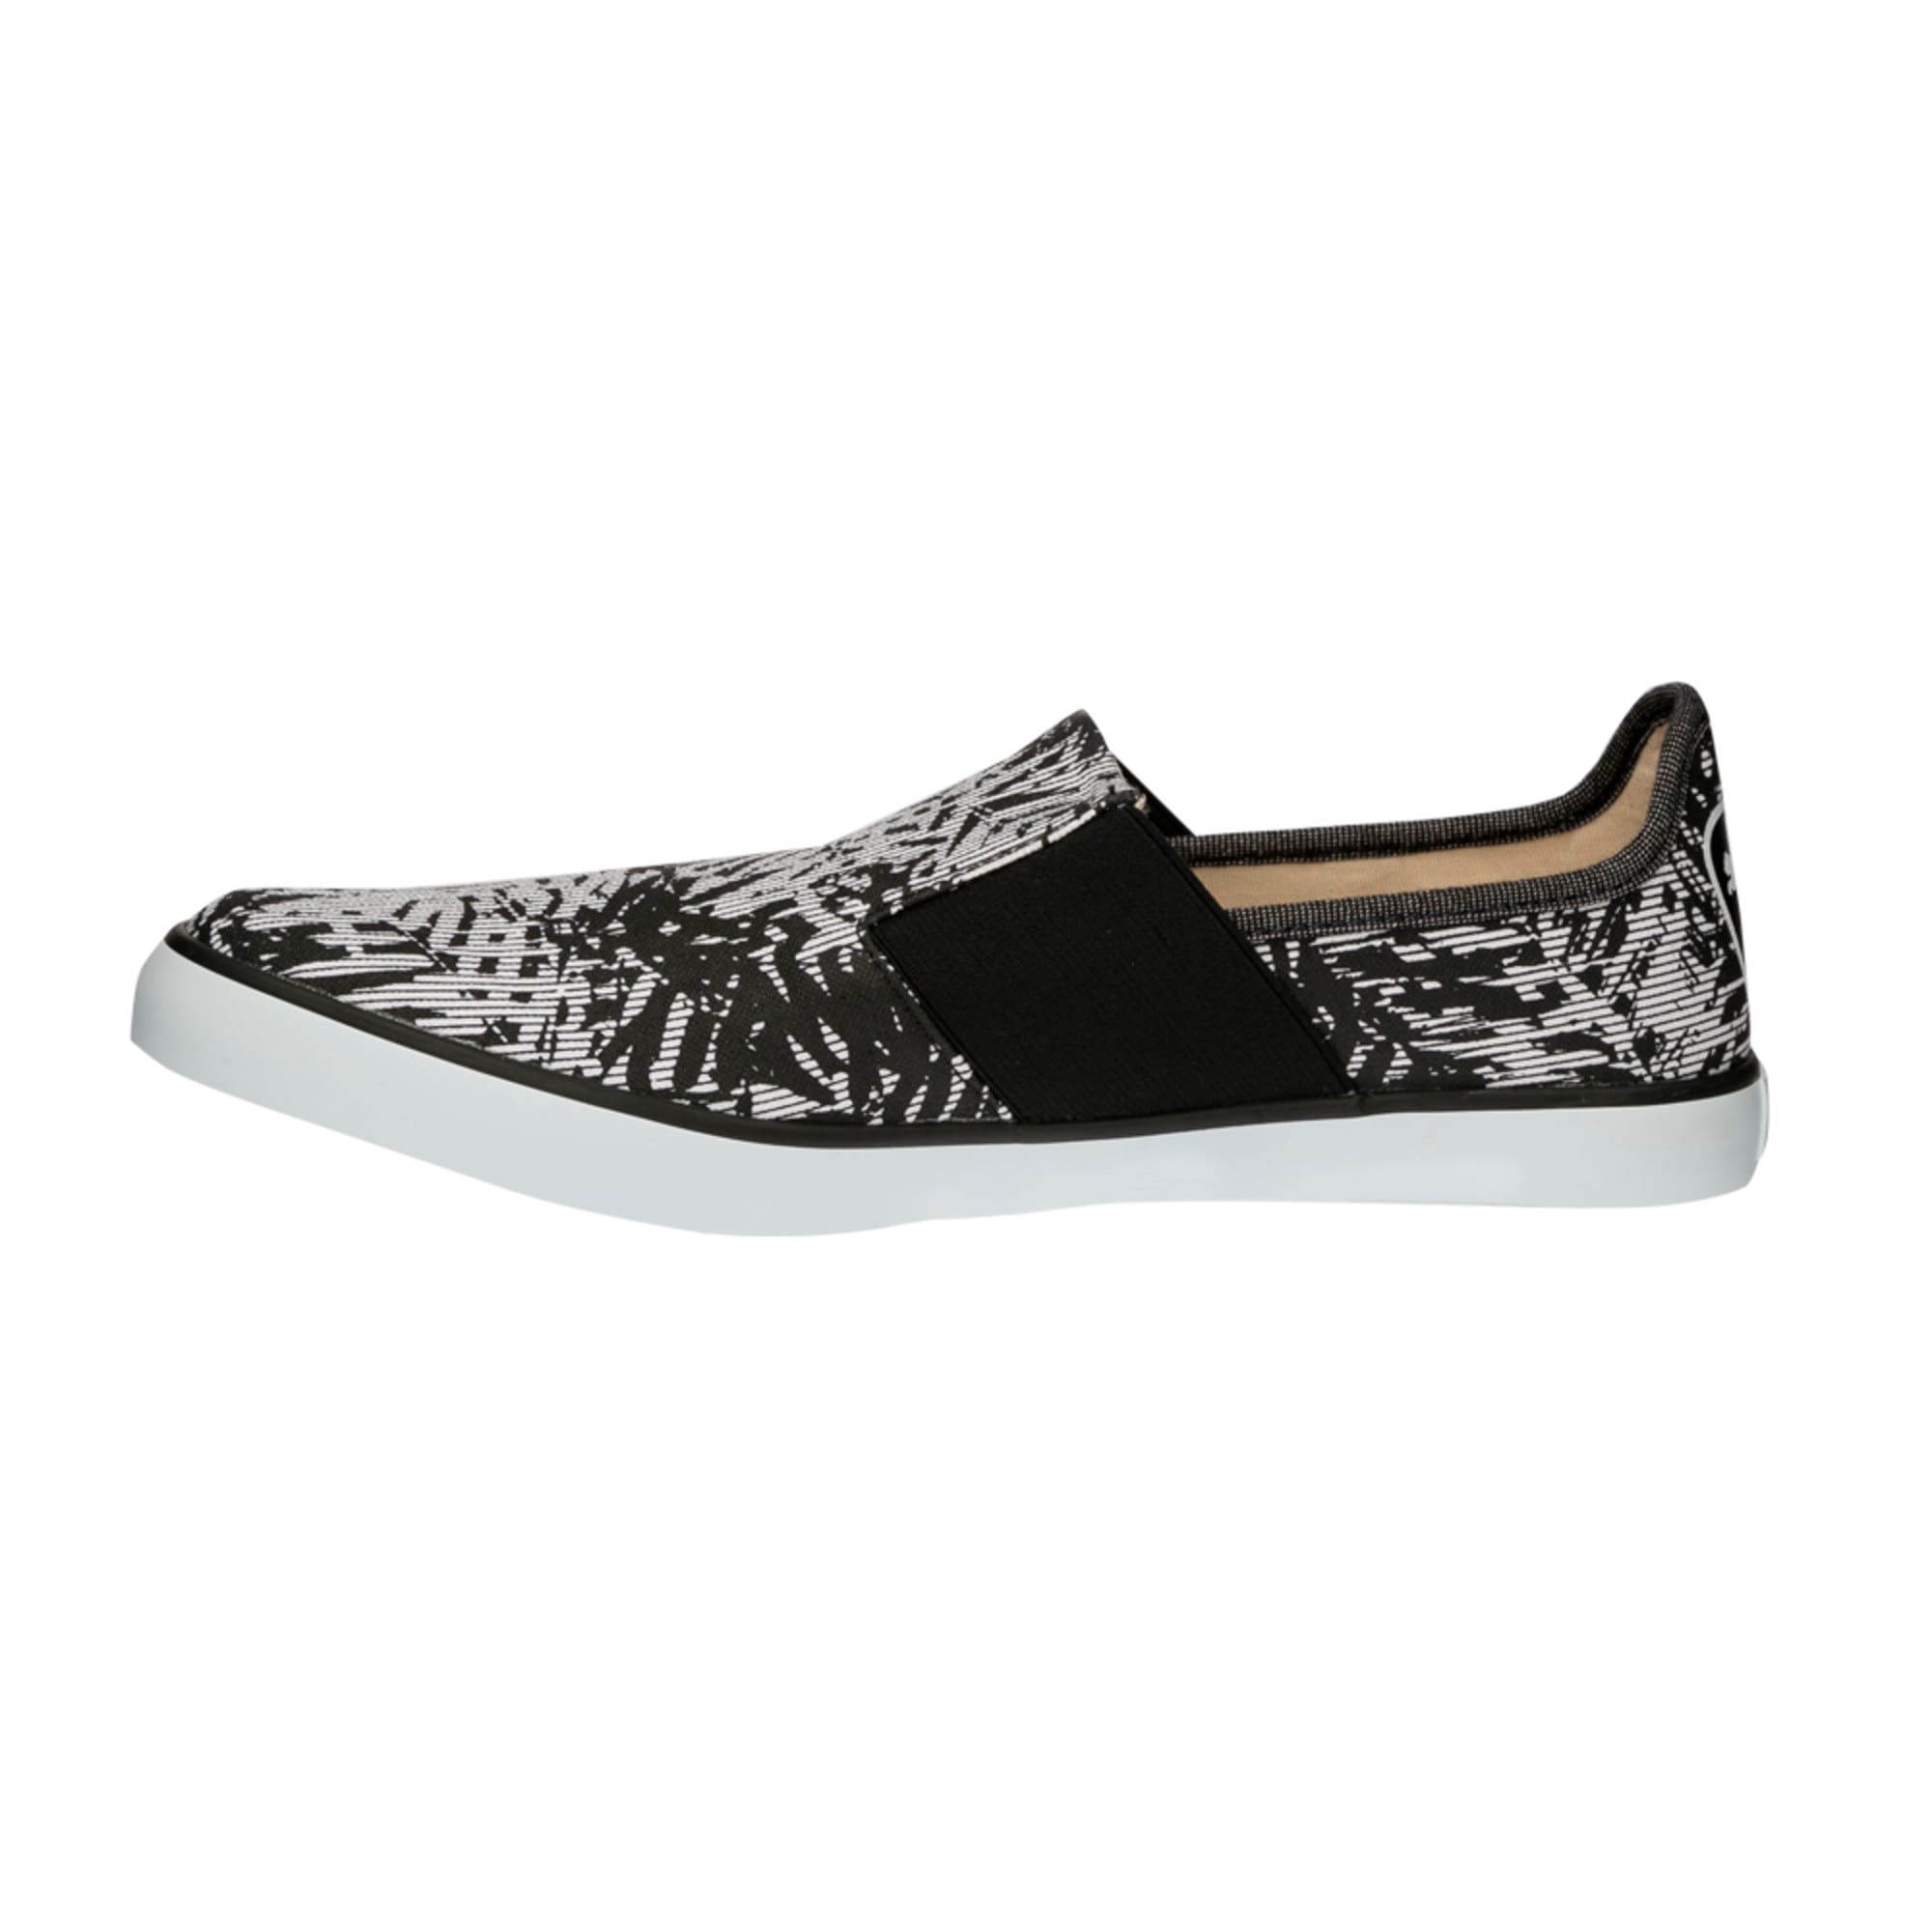 Thumbnail 1 of Lazy Slip On Graphic DP, Black-Gray Violet-White, medium-IND